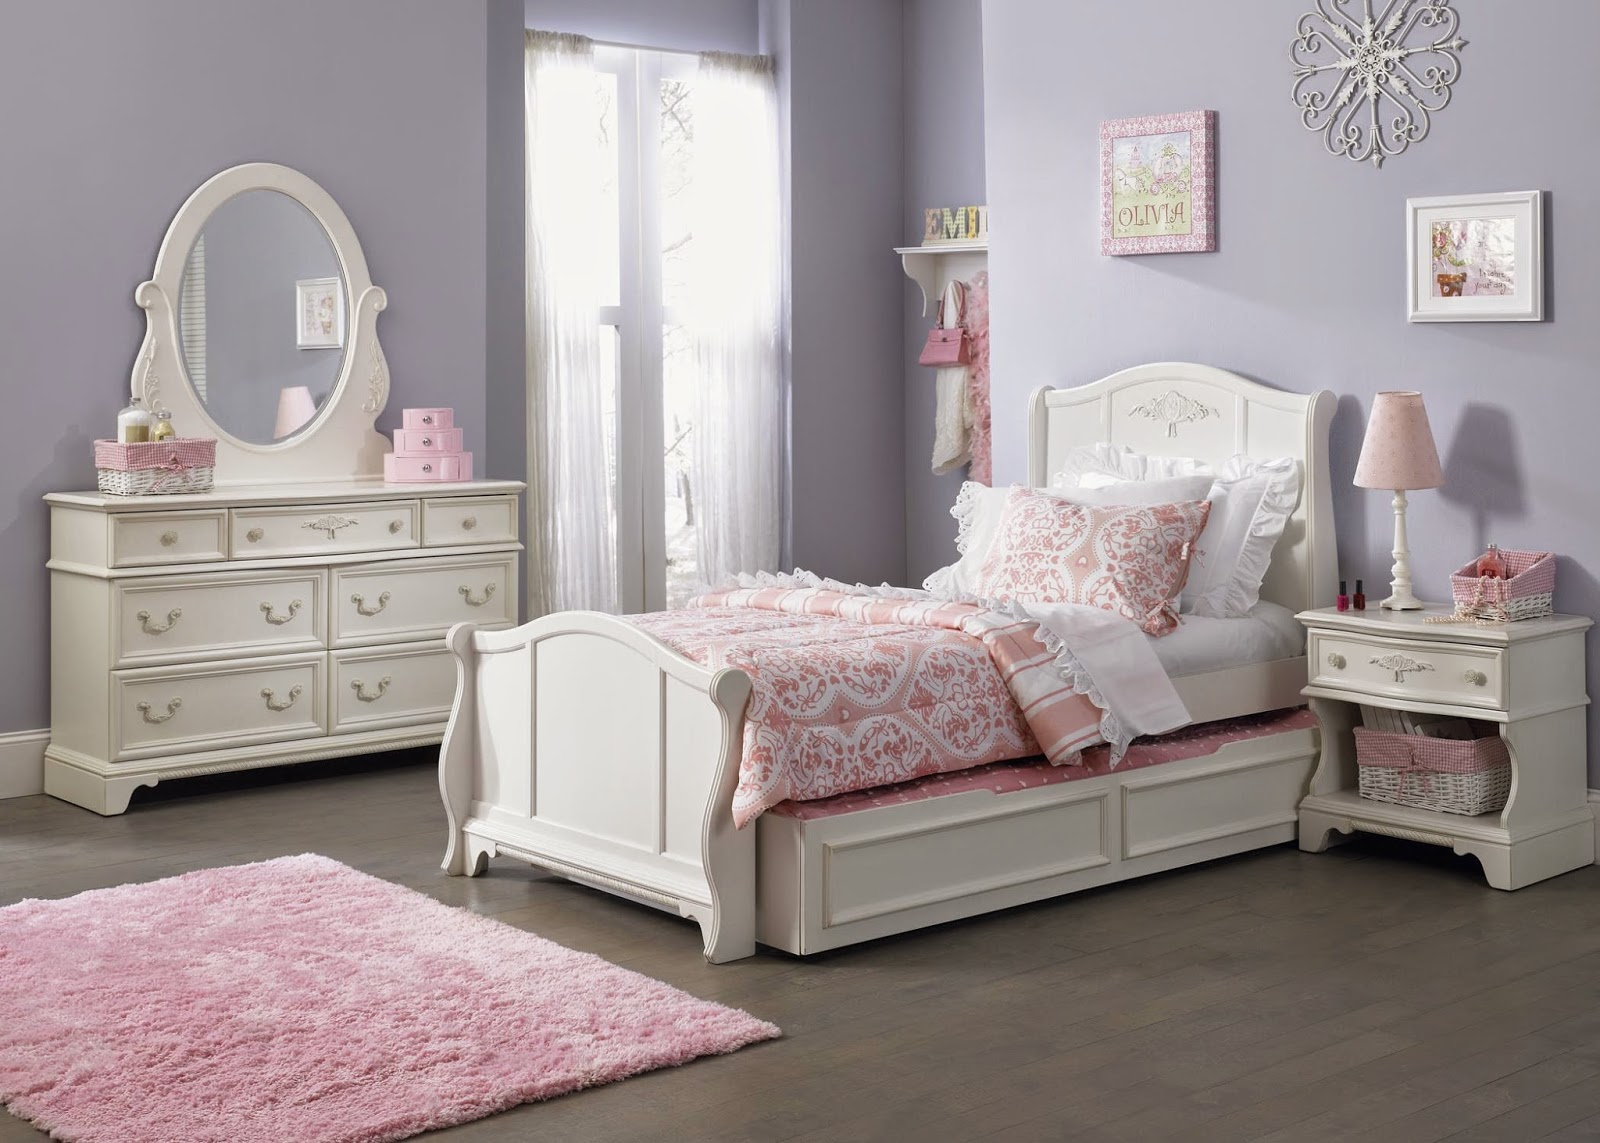 Tips For Decorating Youth Bedrooms 5